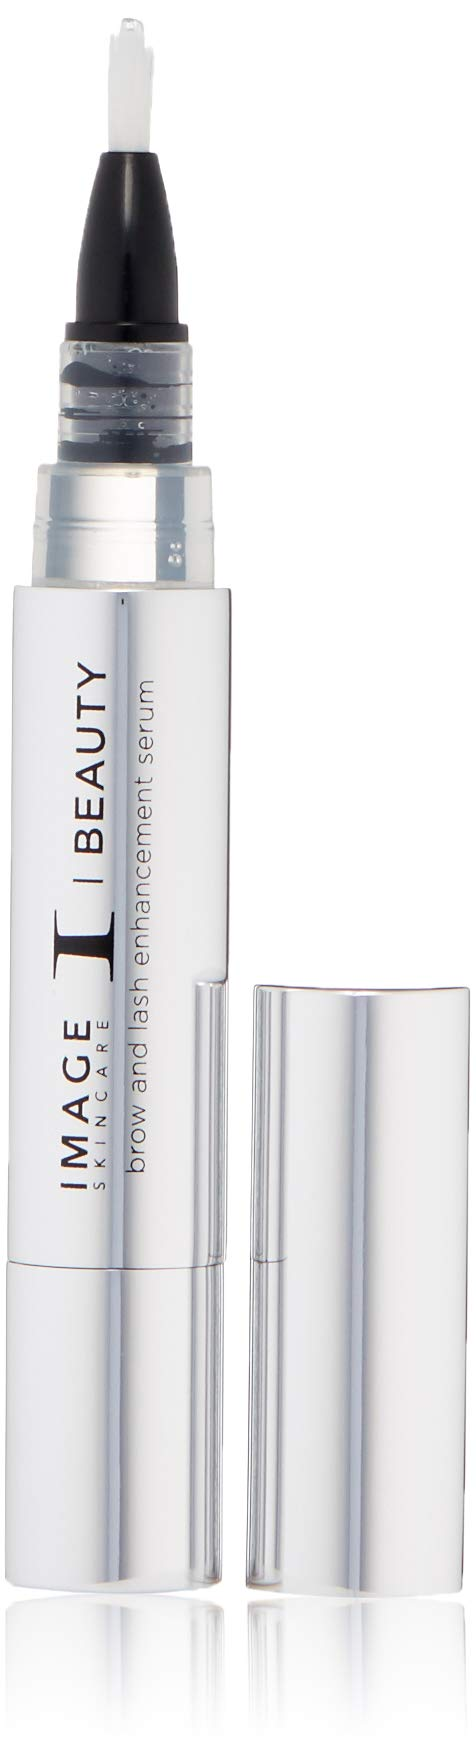 IMAGE Skincare I Beauty Brow and Lash Enhancement Serum, 0.14 Oz by Image Skincare